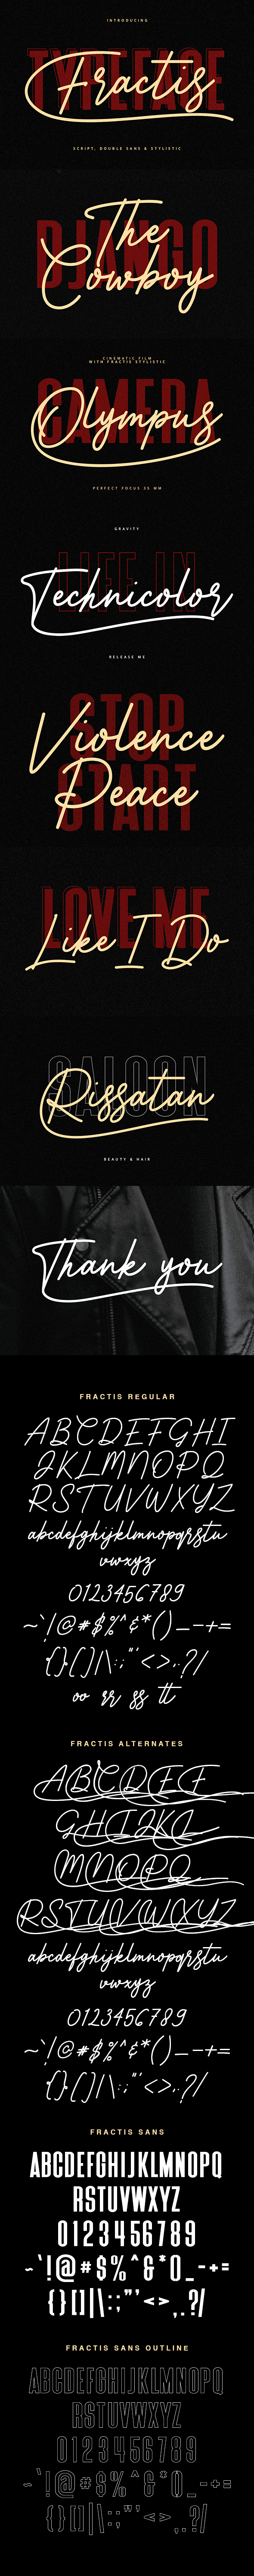 Fractis Typeface Collection - Calligraphy Script